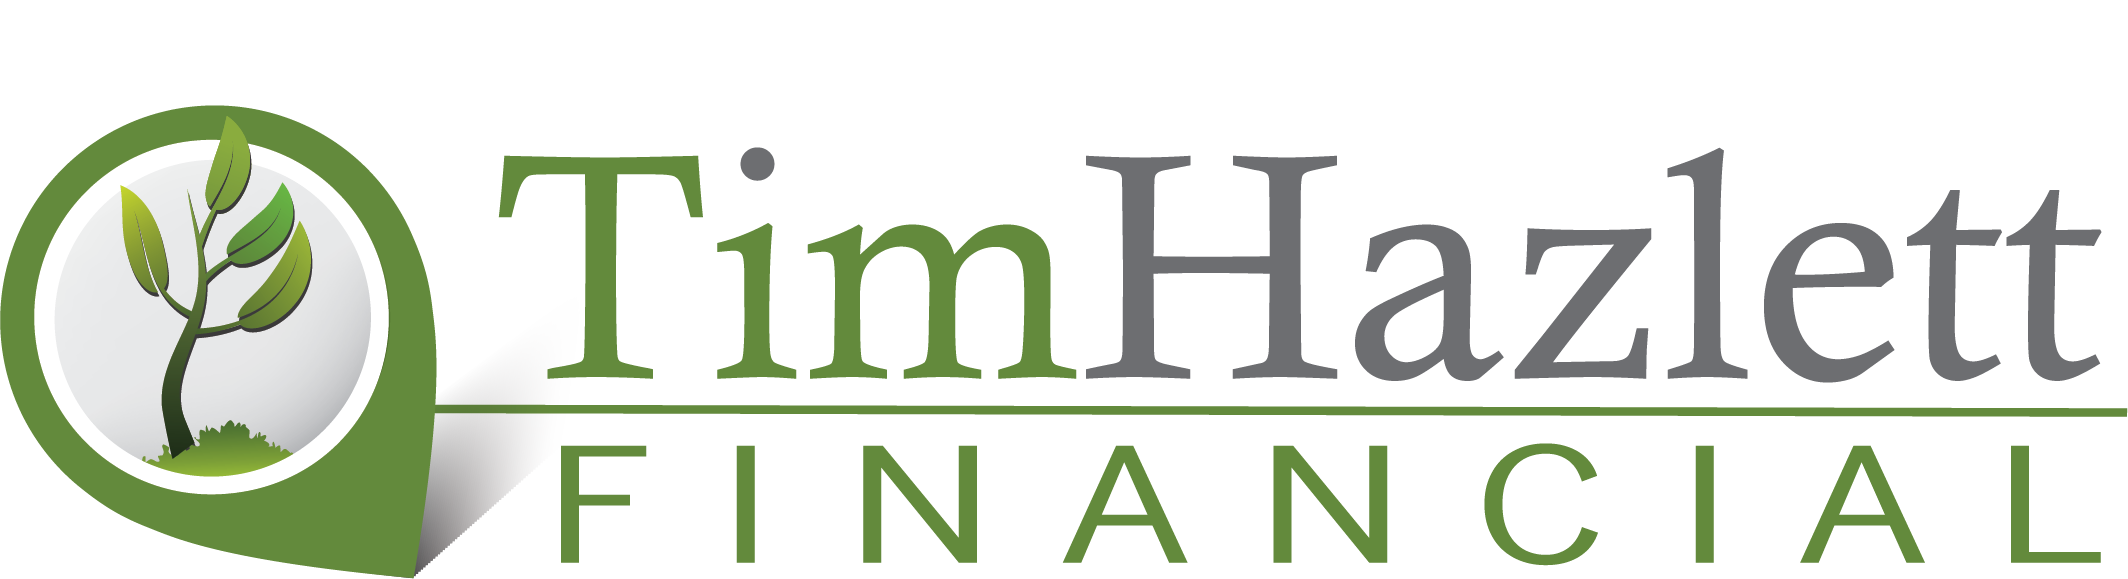 Logo for Tim Hazlett - Financial Advisor - Gander, Newfoundland